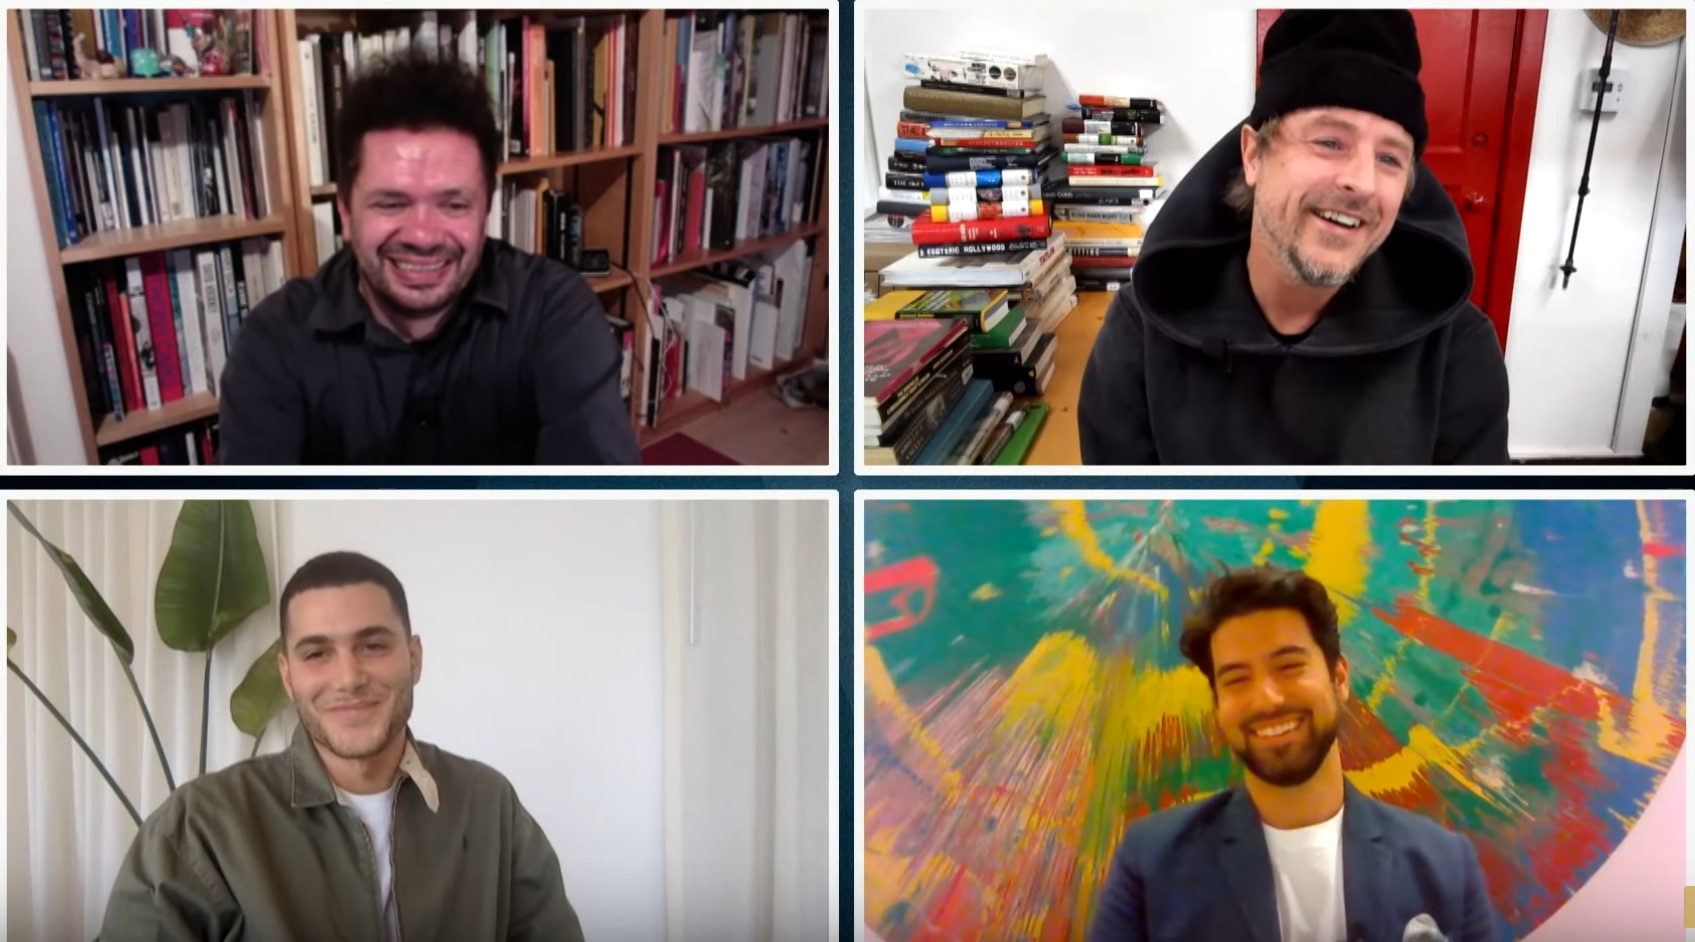 Clockwise from top left: Michele Robecchi, Sterling Ruby, Ashkan Baghestani and Fai Khadra